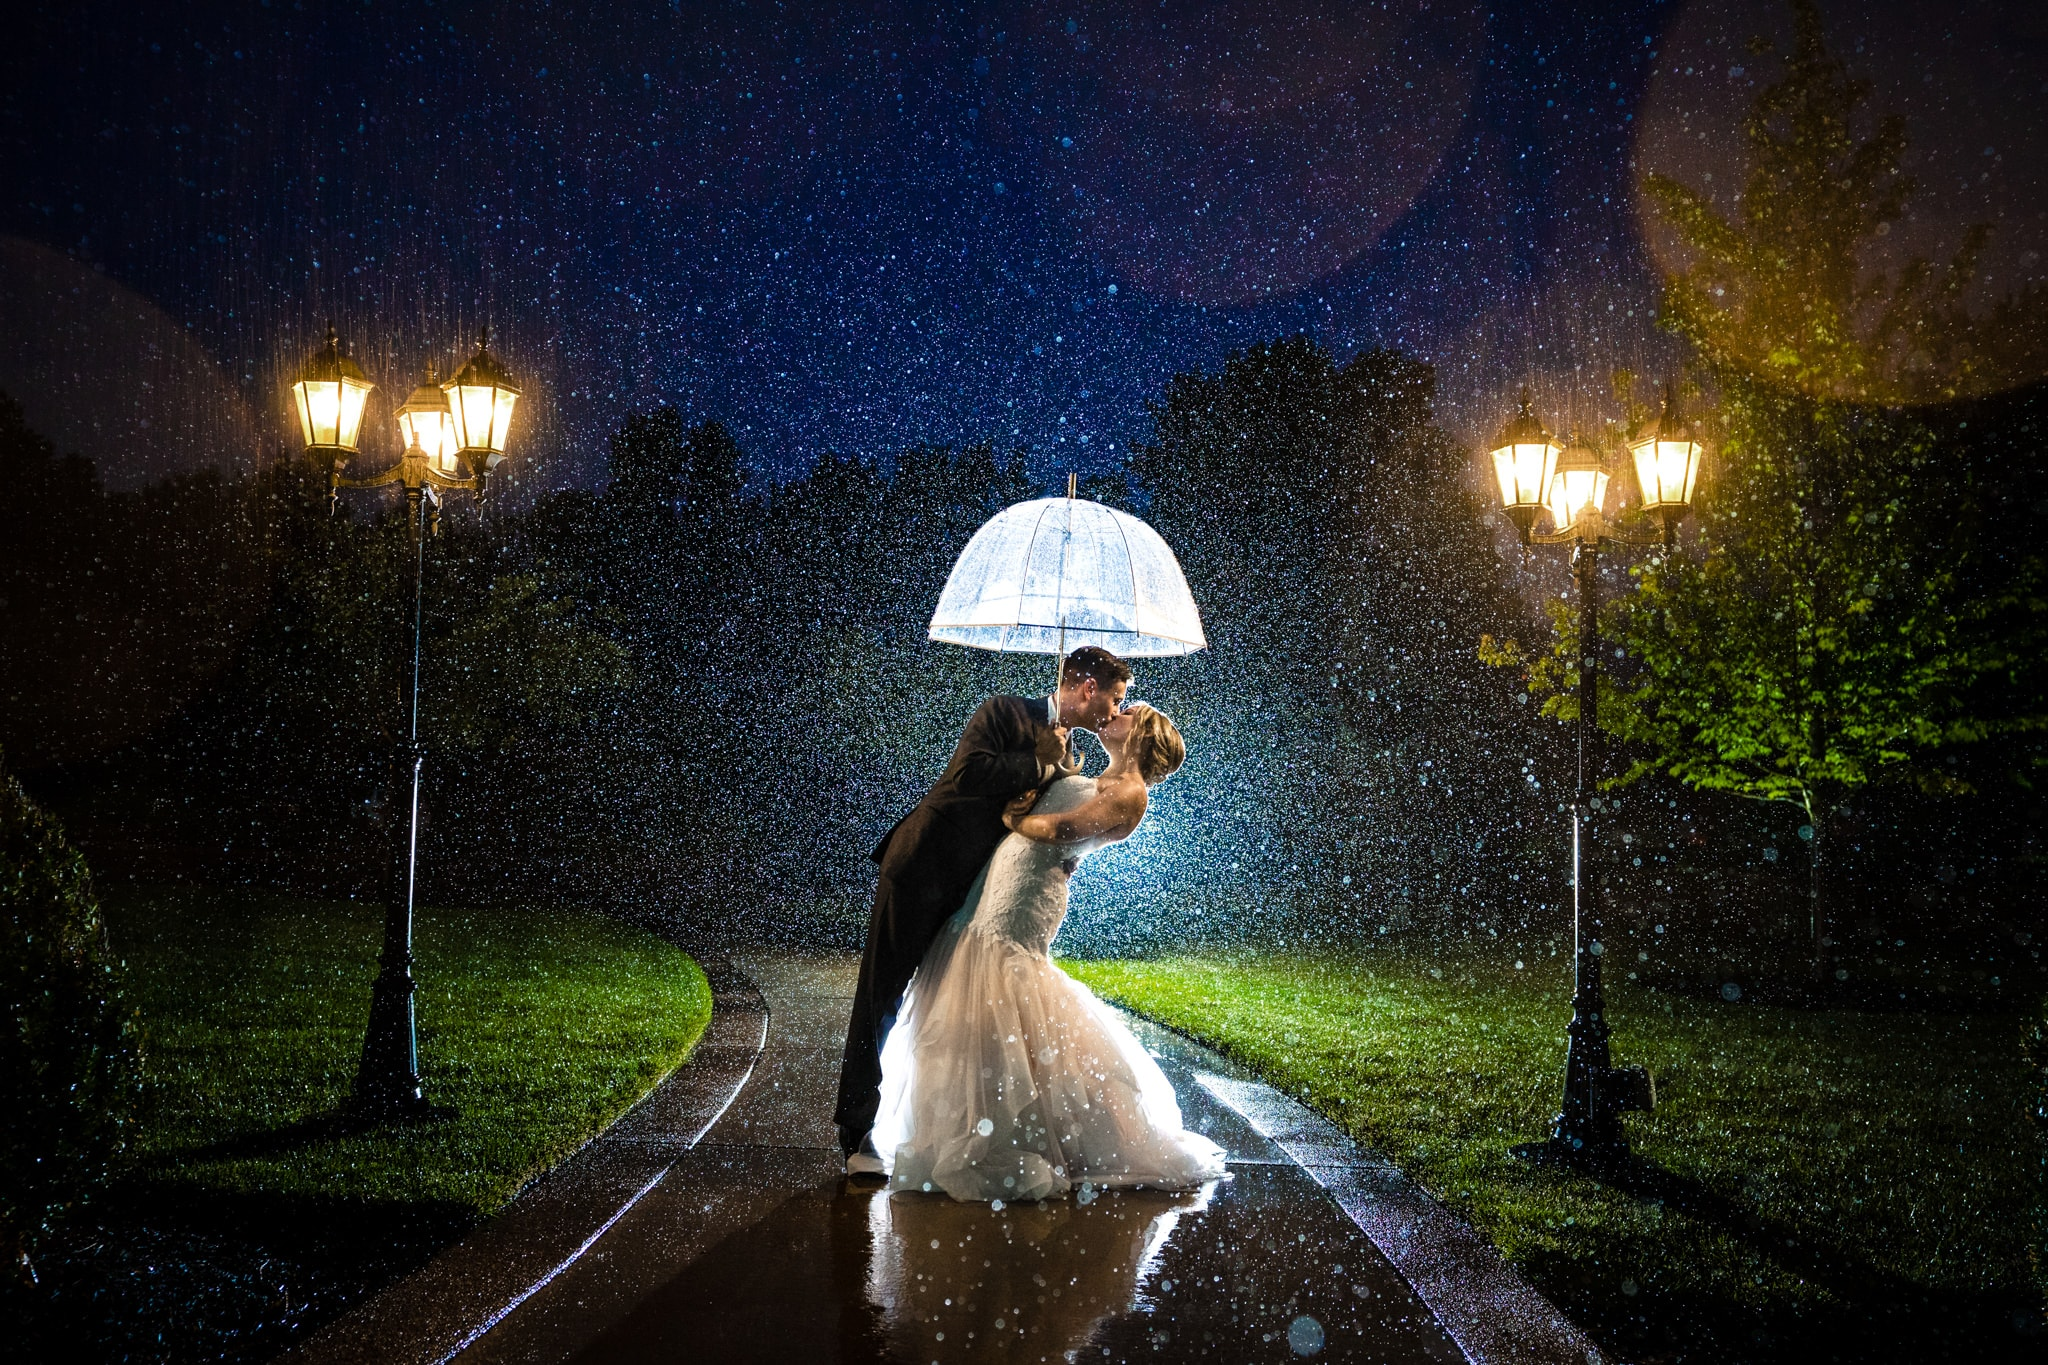 Husband and wife kiss in the rain underneath an umbrella at night at Cincinnati Wedding Venue the Manor House by Cincinnati Wedding Photographer Studio 22 Photography